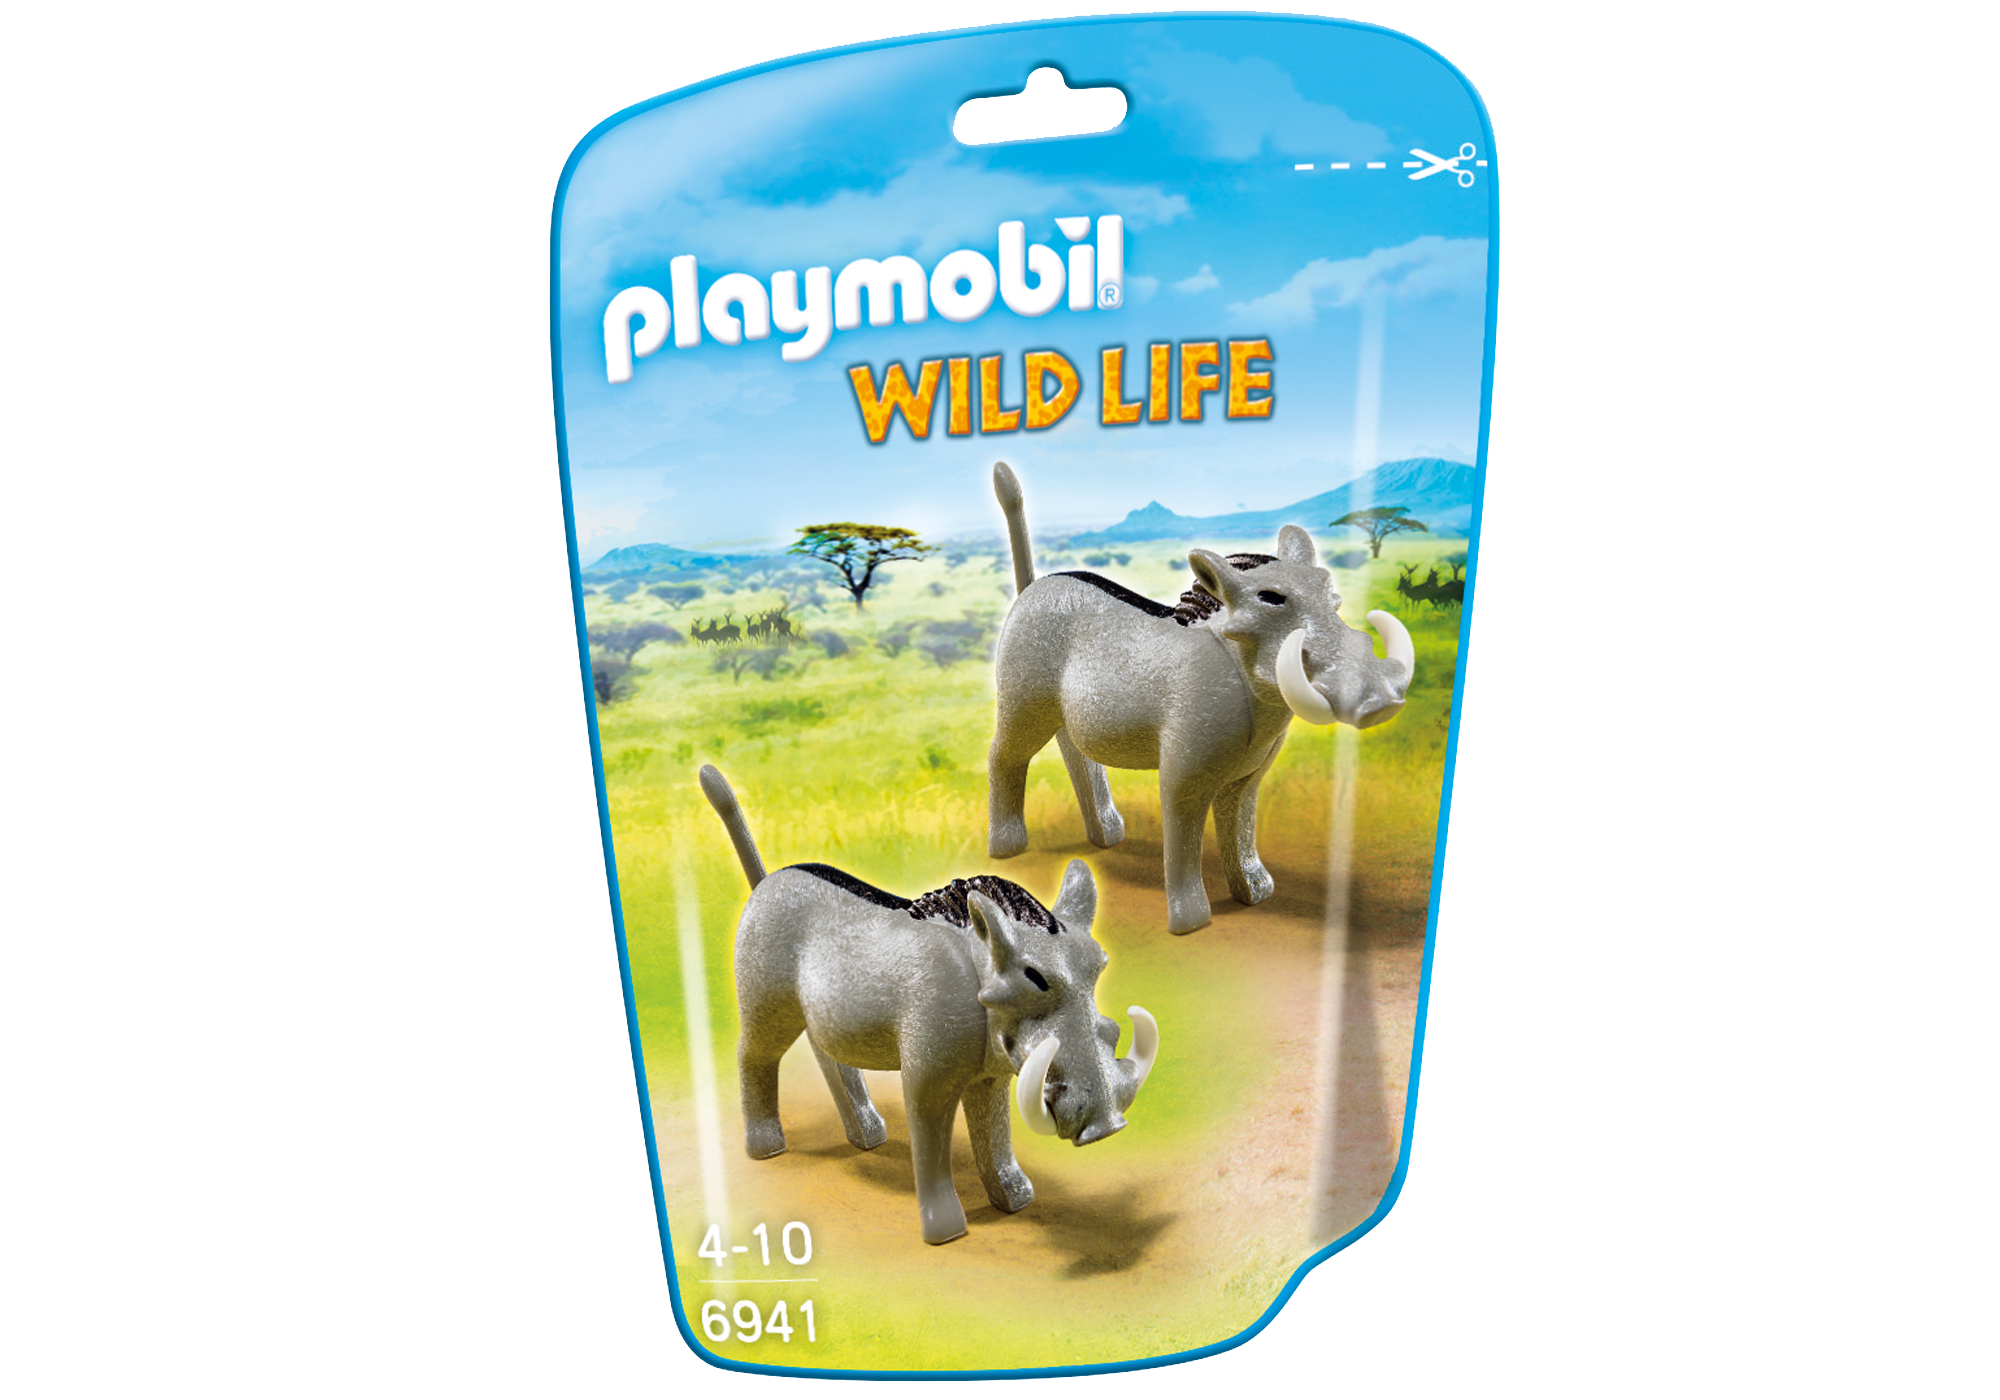 http://media.playmobil.com/i/playmobil/6941_product_box_front